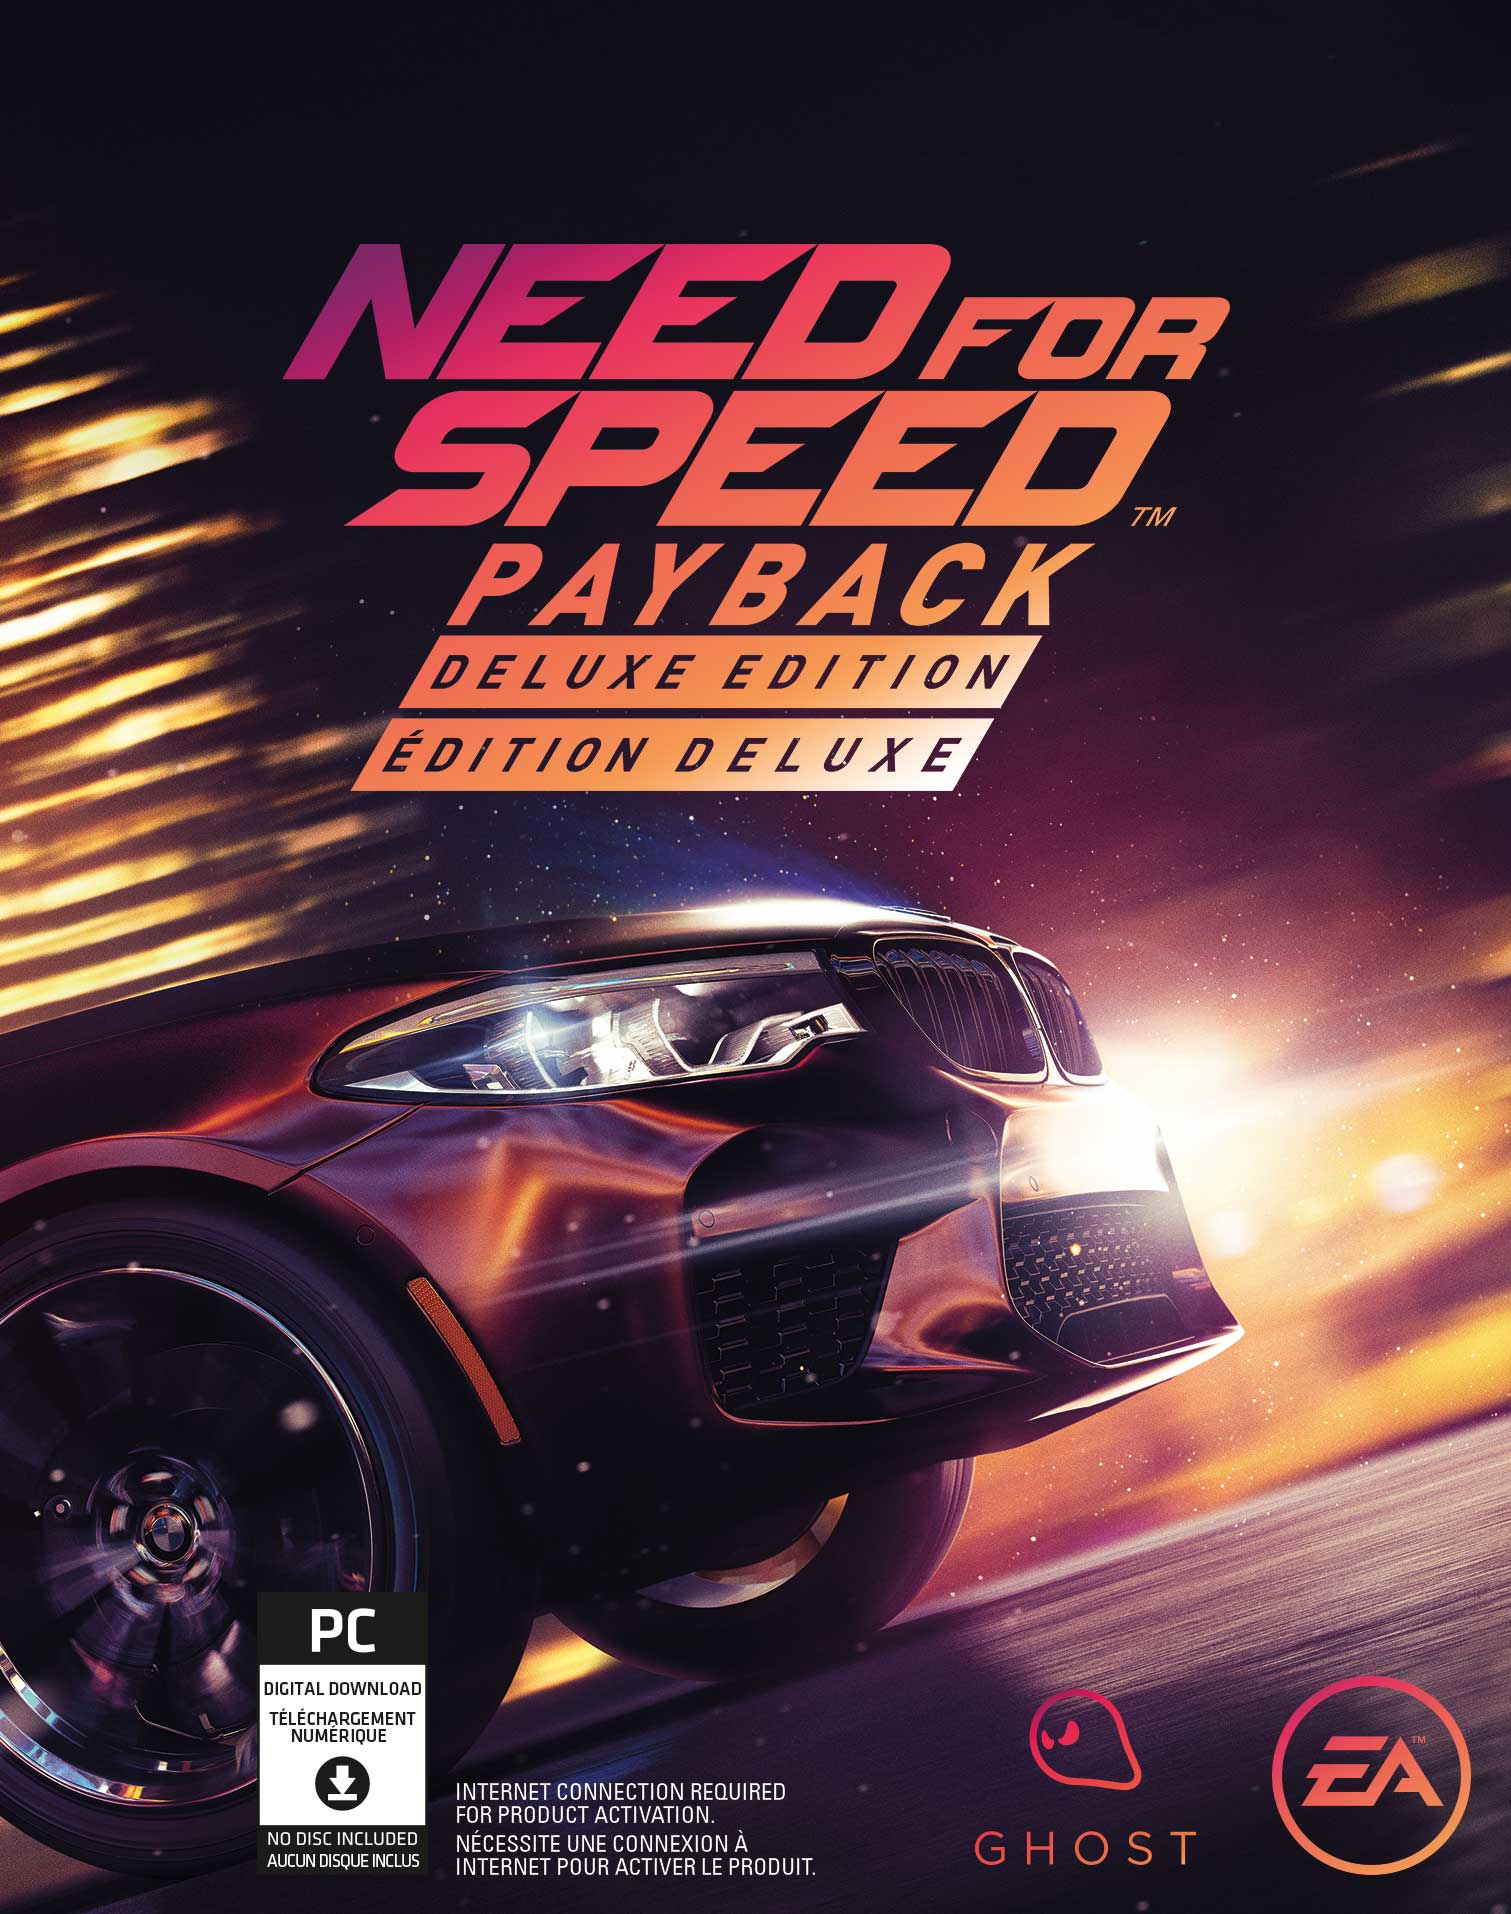 Baixar Need for Speed™ Payback Instalar Mais recente Aplicativo Downloader